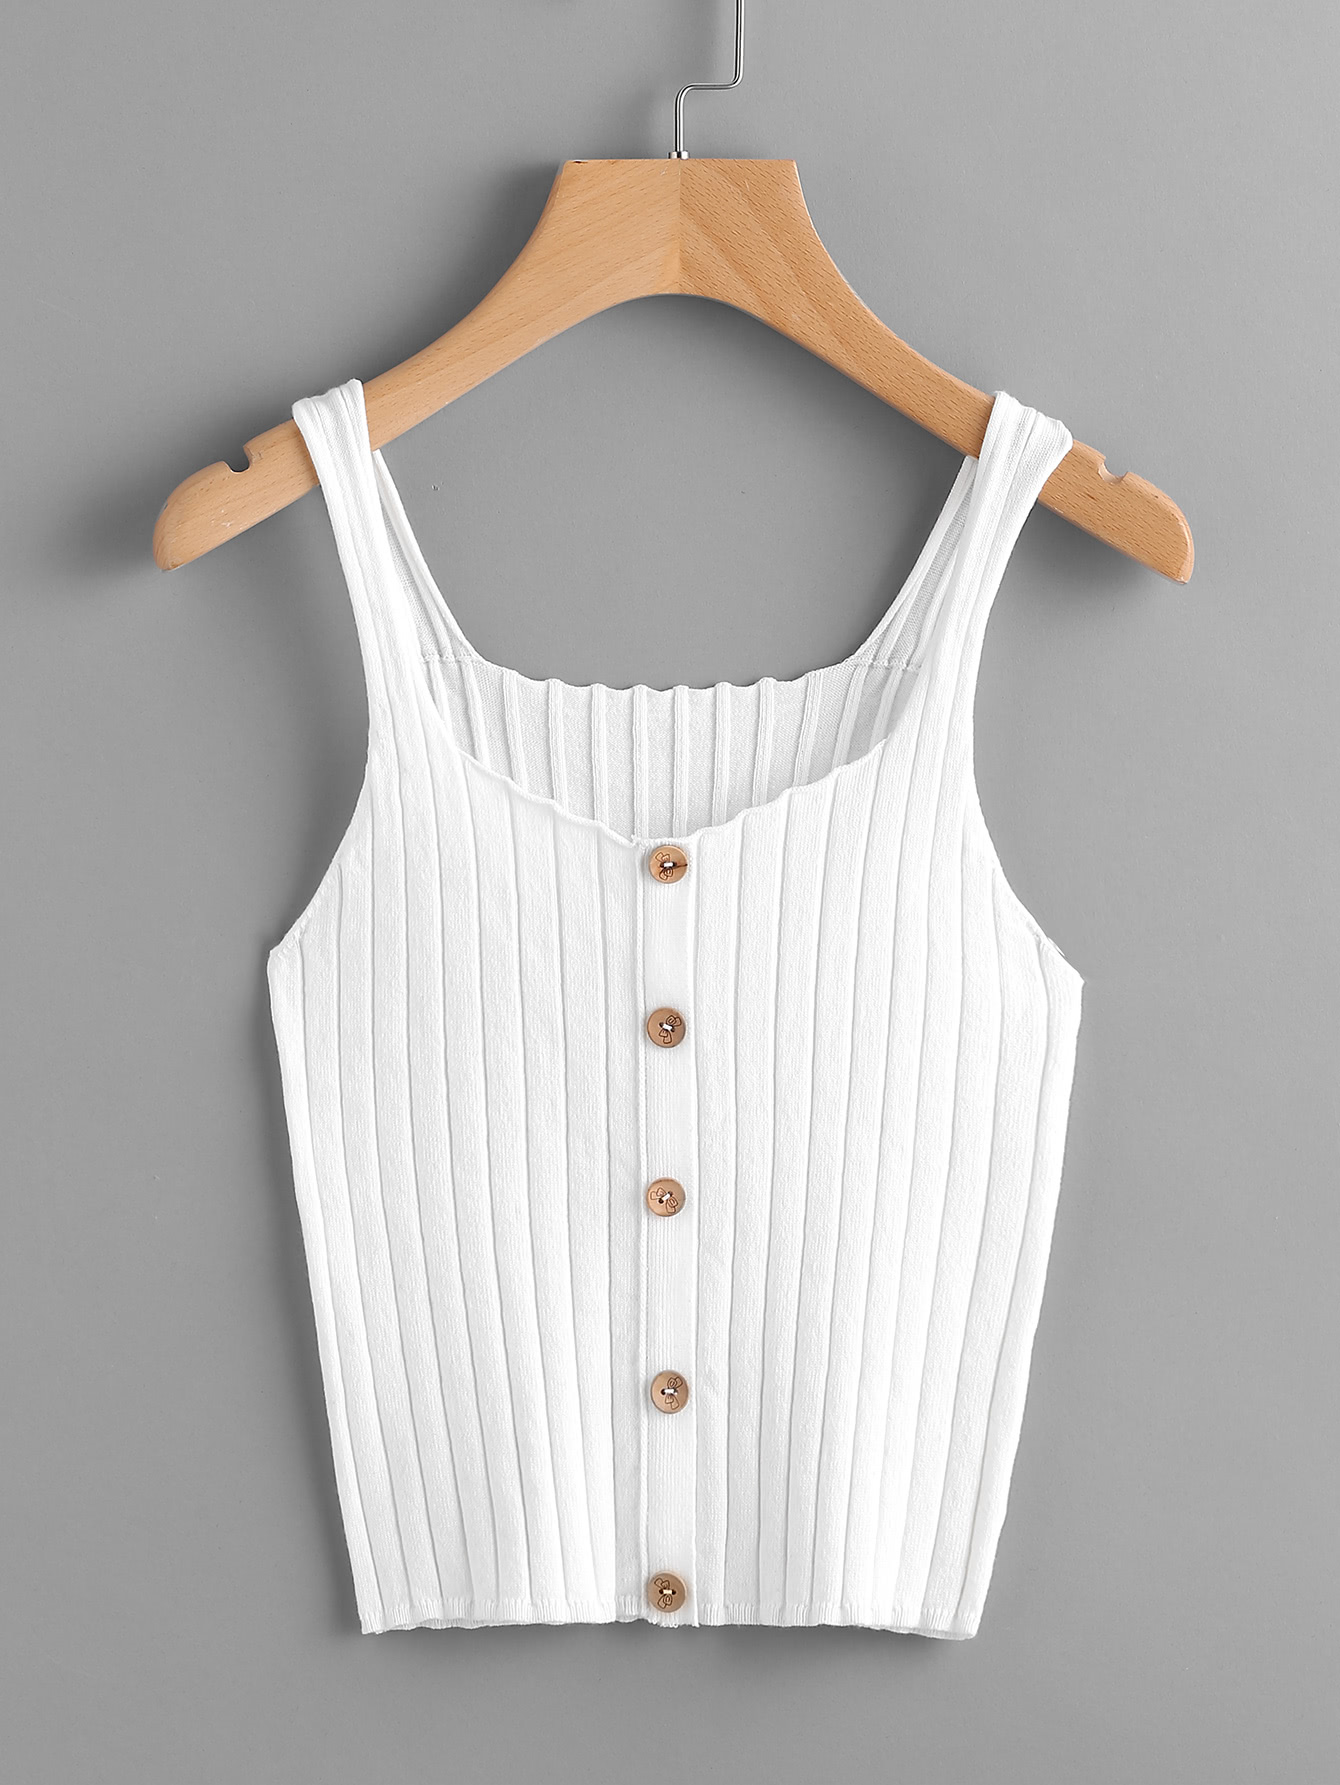 Button Front Rib Knit Tank Top vest170614451